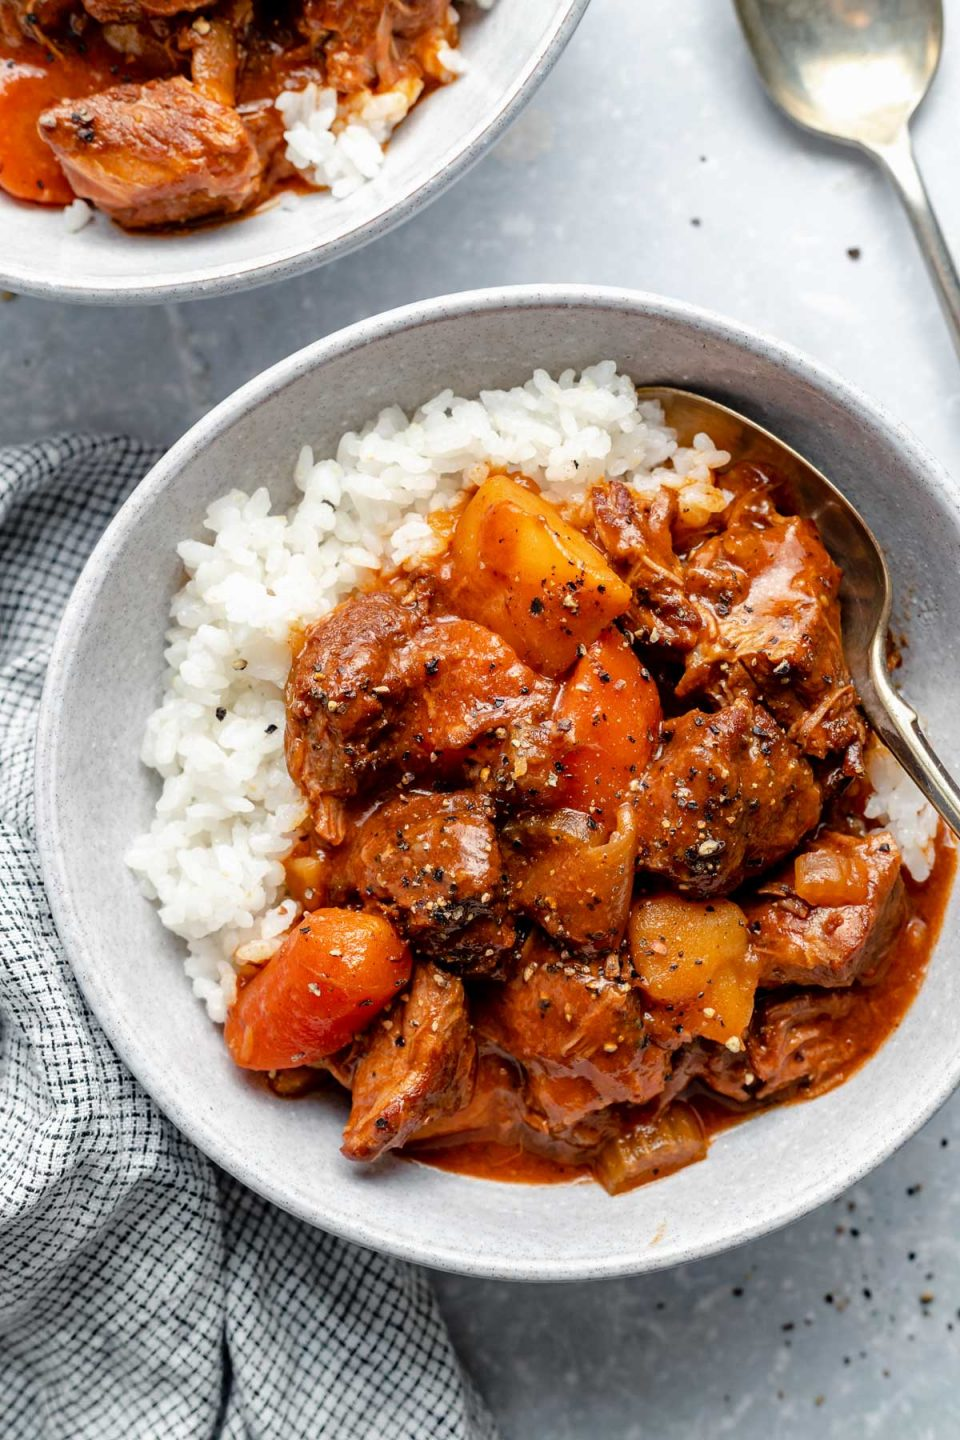 Hawaiian style beef stew over sticky rice in a large bowl, which sits atop a light blue surface next to a checkered linen napkin, a spoon, & a second bowl of Hawaiian beef stew.